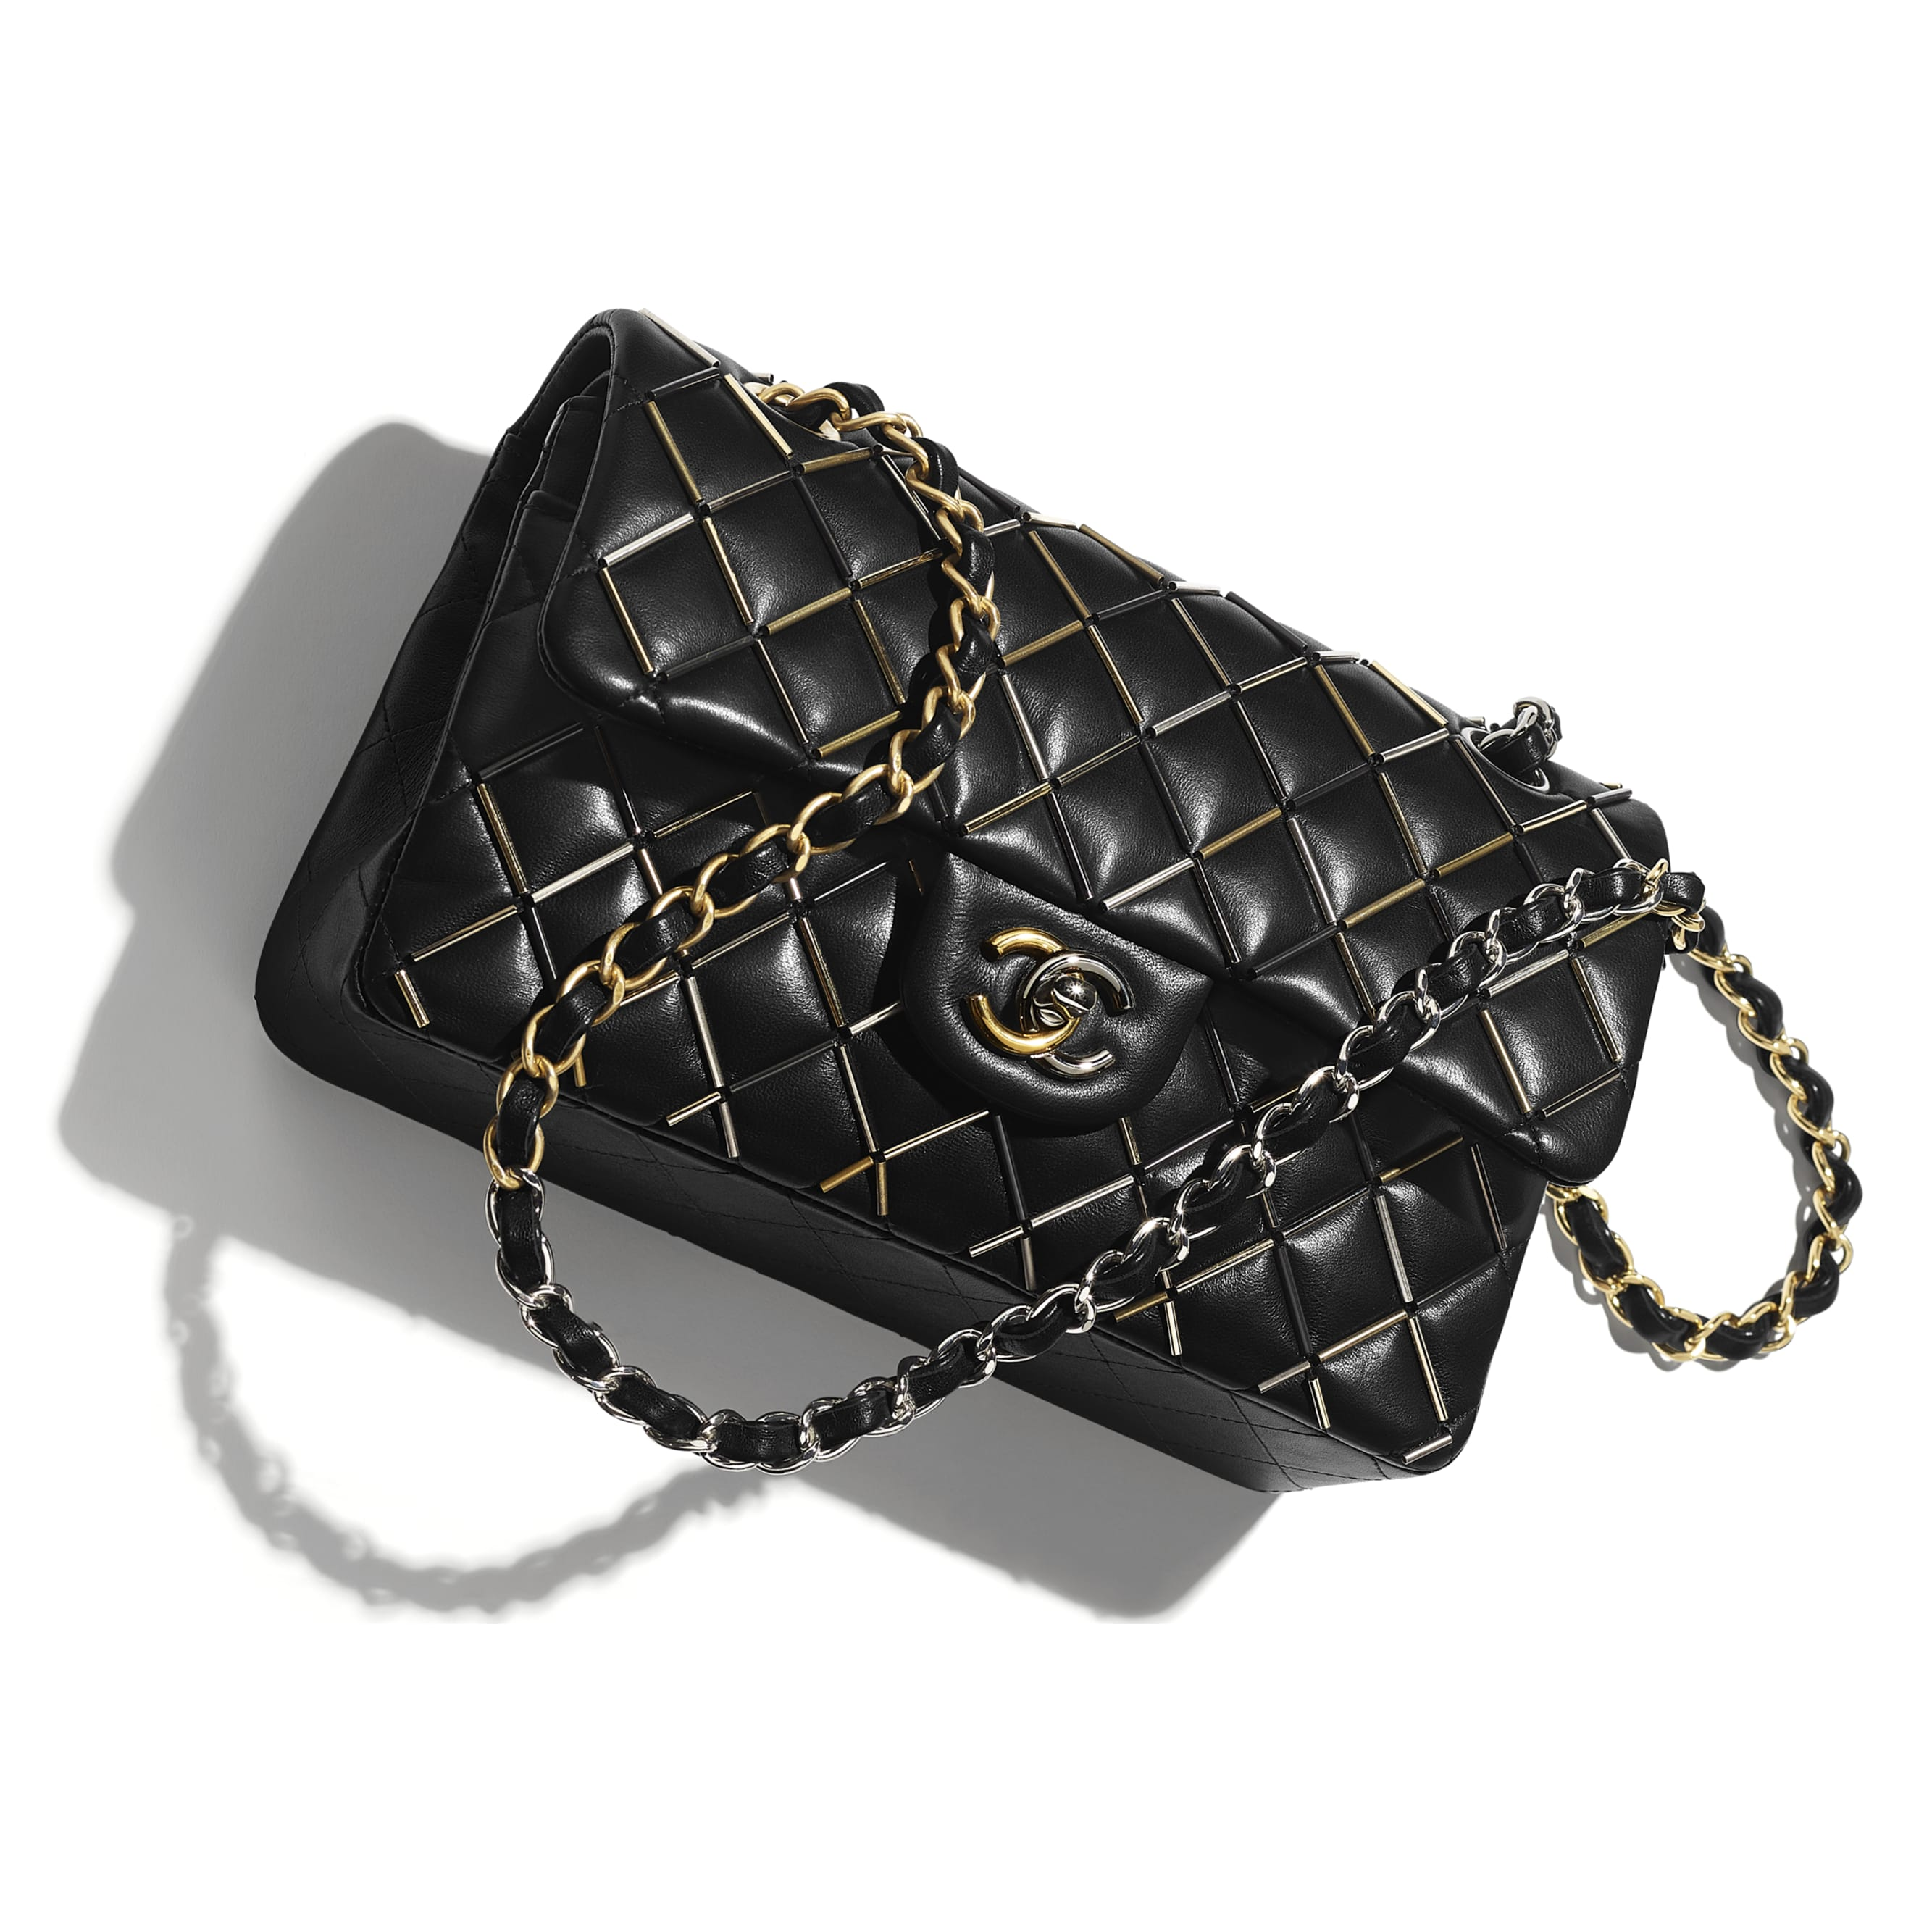 Classic Handbag - Black - Lambskin, Gold-Tone, Silver-Tone, Black & Ruthenium-Finish Metal  - CHANEL - Extra view - see standard sized version